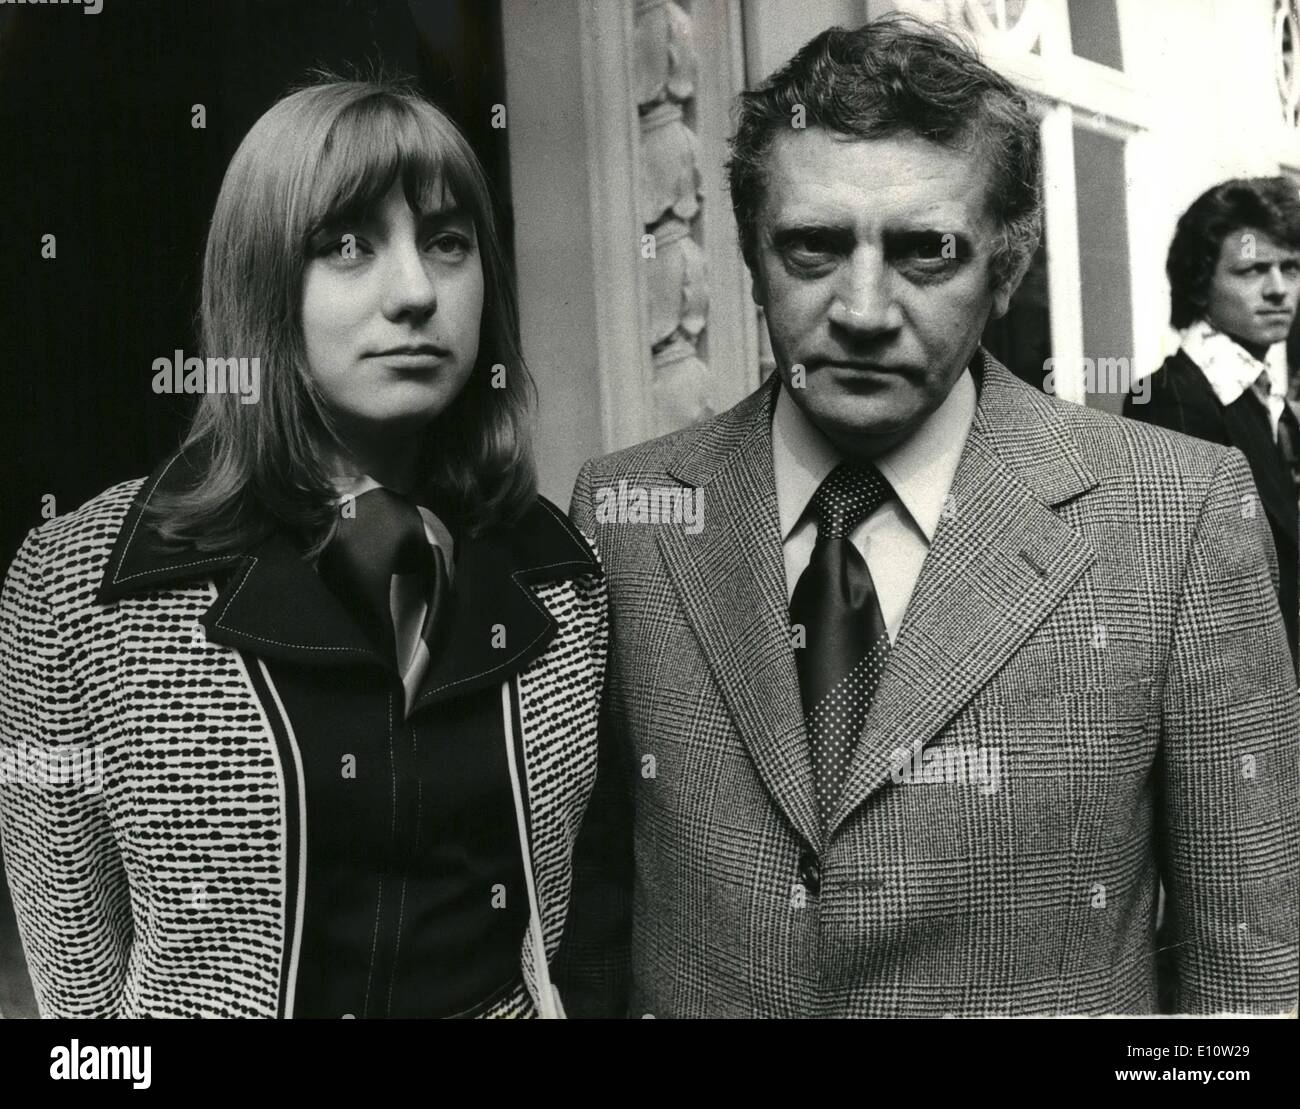 Apr. 04, 1974 - Soviet Author who considers himself expelled from Russia arrives in London.: Vladimir Maximov, the dissident Soviet author of the novel ''The Seven Days of Creation'' arrived in London accompanied by his wife. The 44-year-old writer who left Russia last month when, after months of persecution, the authorities granted him and his wife a one-year exit visa. But exclaimed in France and Germany. The novel tells the story of the evolution or decline of the Soviet system over the past half century as seen through the eyes of an ordinary Russian Family - Stock Image